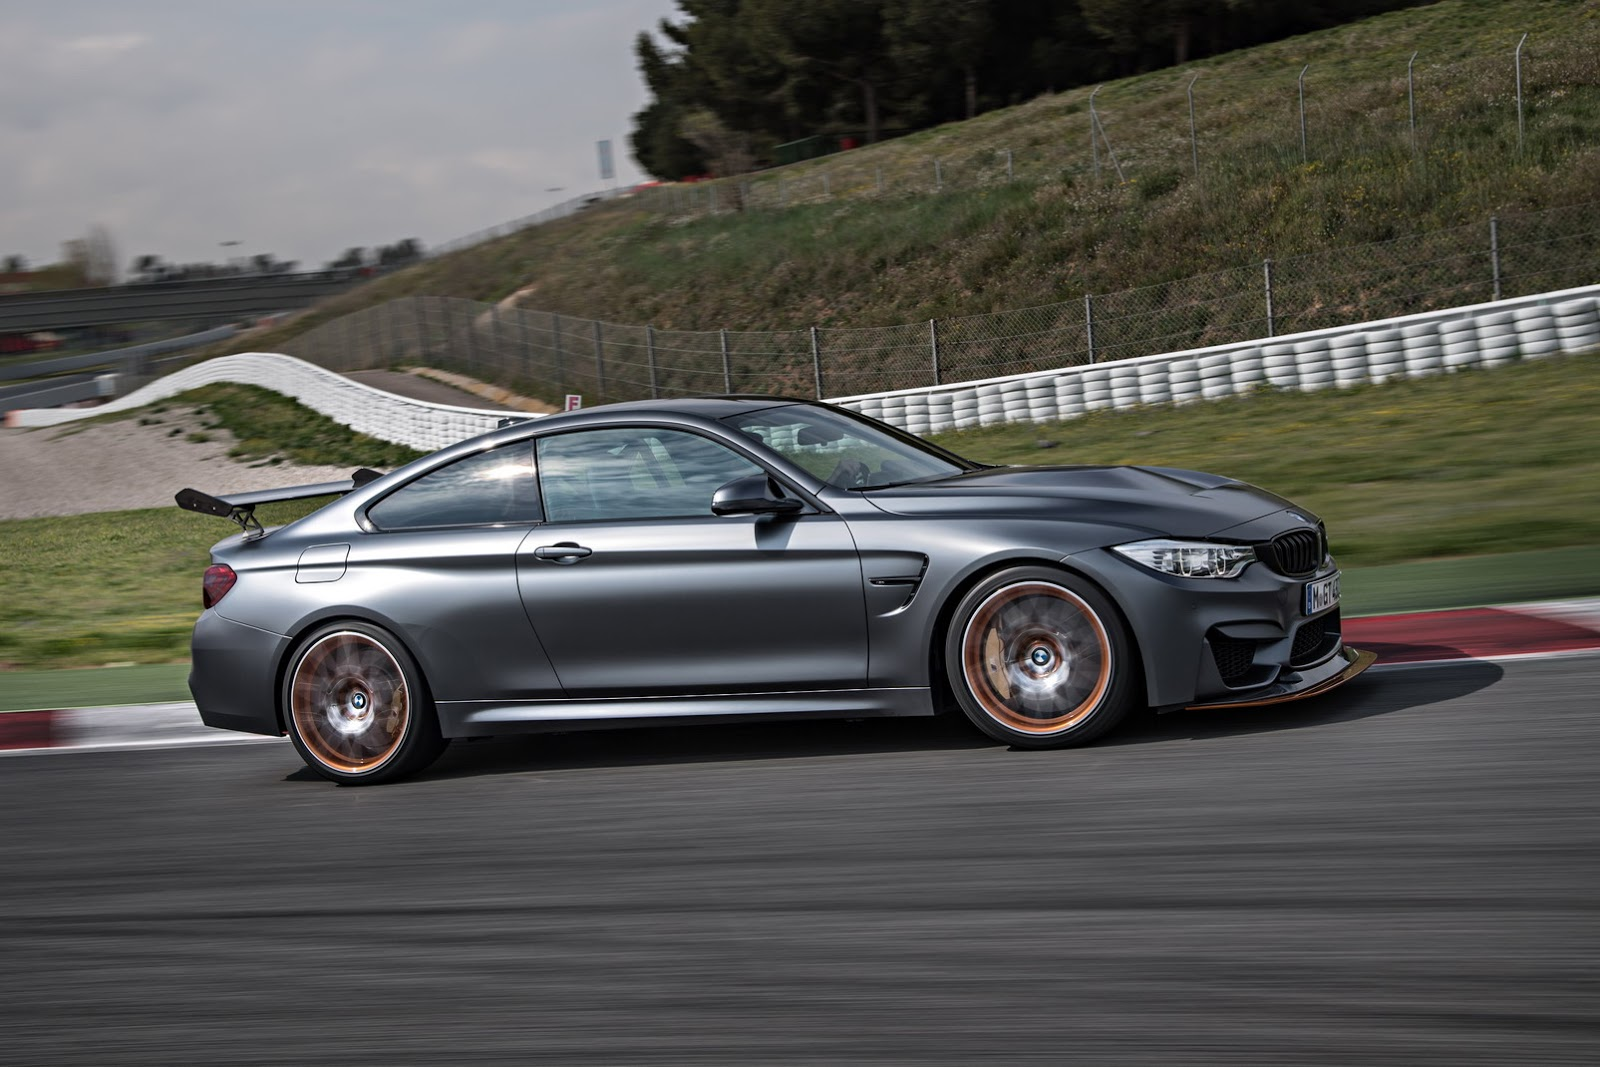 Wonderful image of BMW Drops New Gallery Of M4 GTS And Its E30 E36 And E46 M3  with #646343 color and 1600x1067 pixels